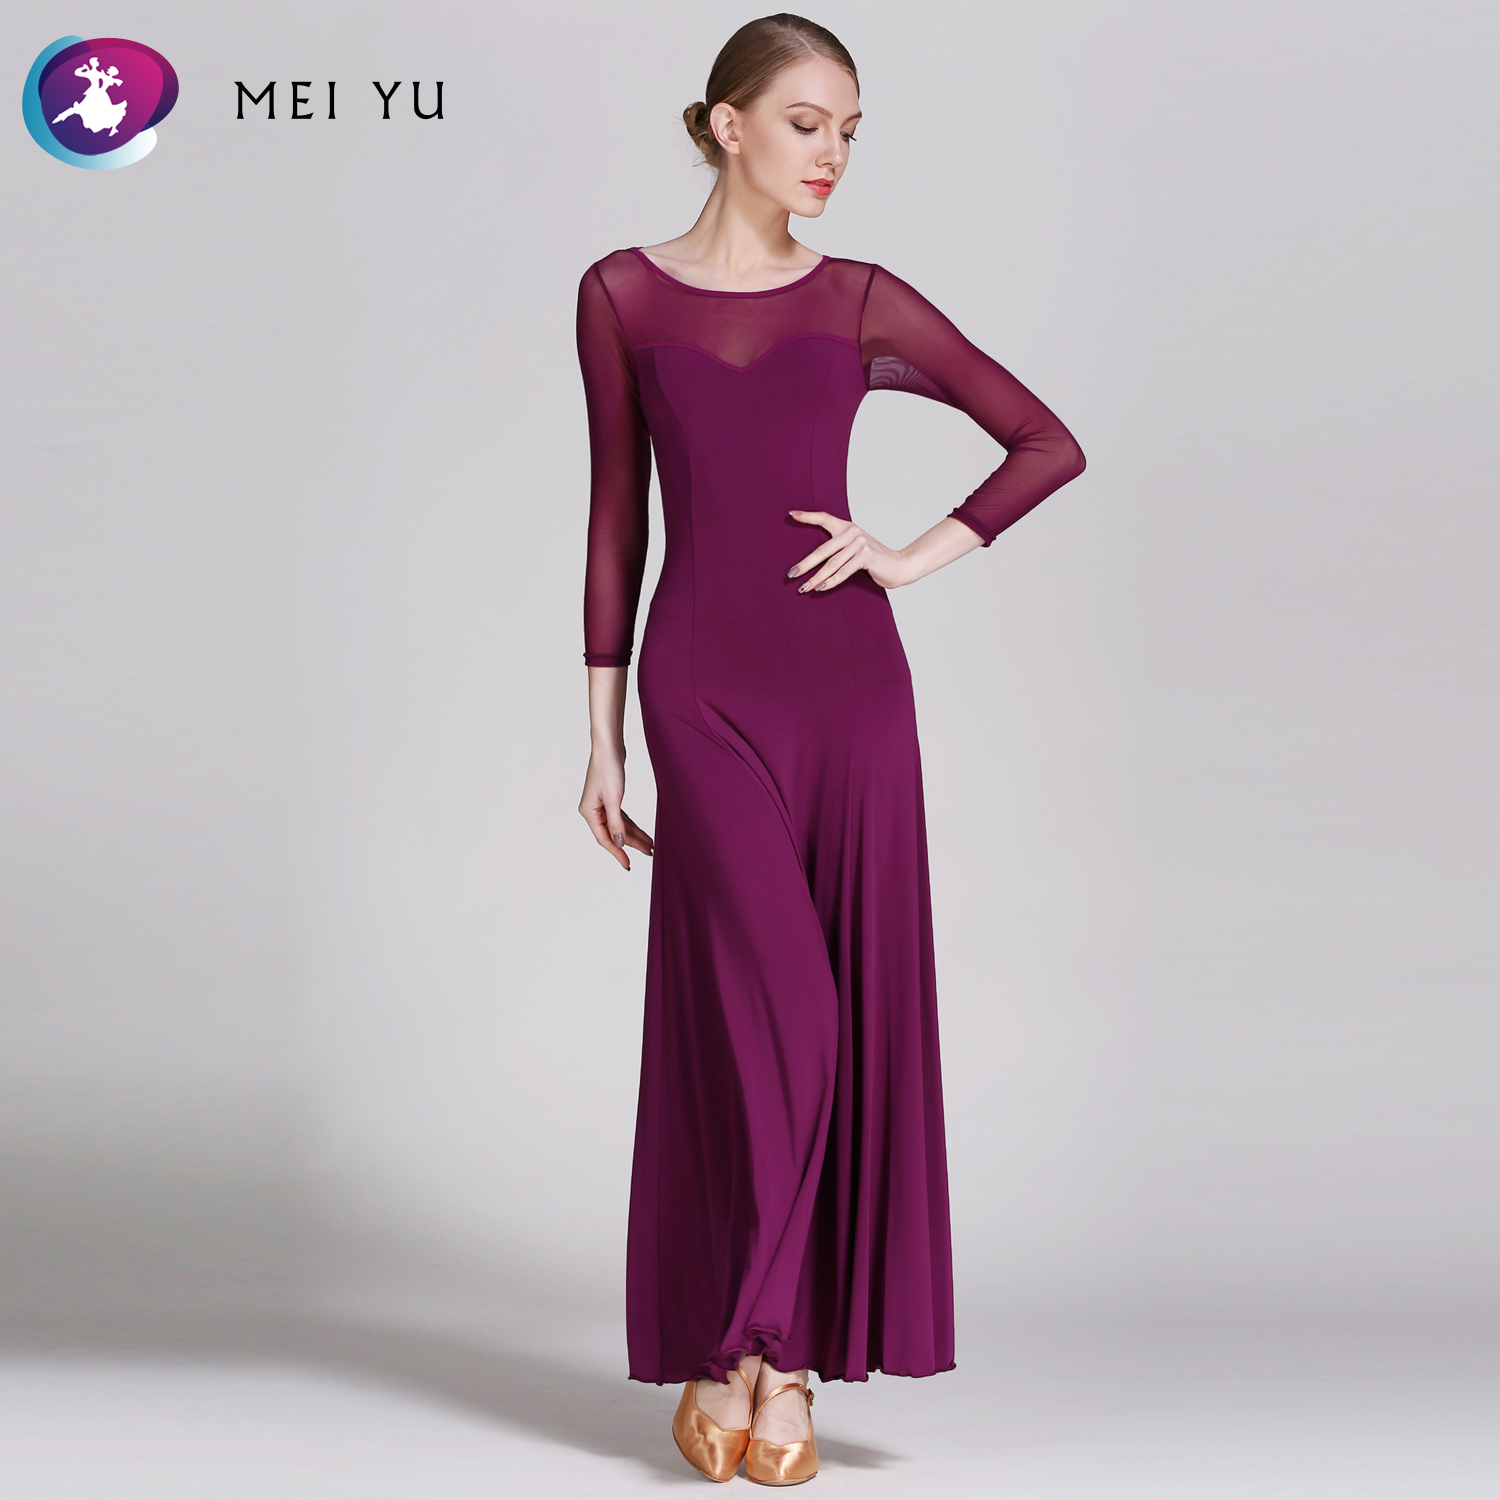 Stage & Dance Wear Mei Yu S8007 Modern Dance Costume Women Ladies Adults Dancewear Waltzing Tango Ballroom Costume Evening Party Dress Activating Blood Circulation And Strengthening Sinews And Bones